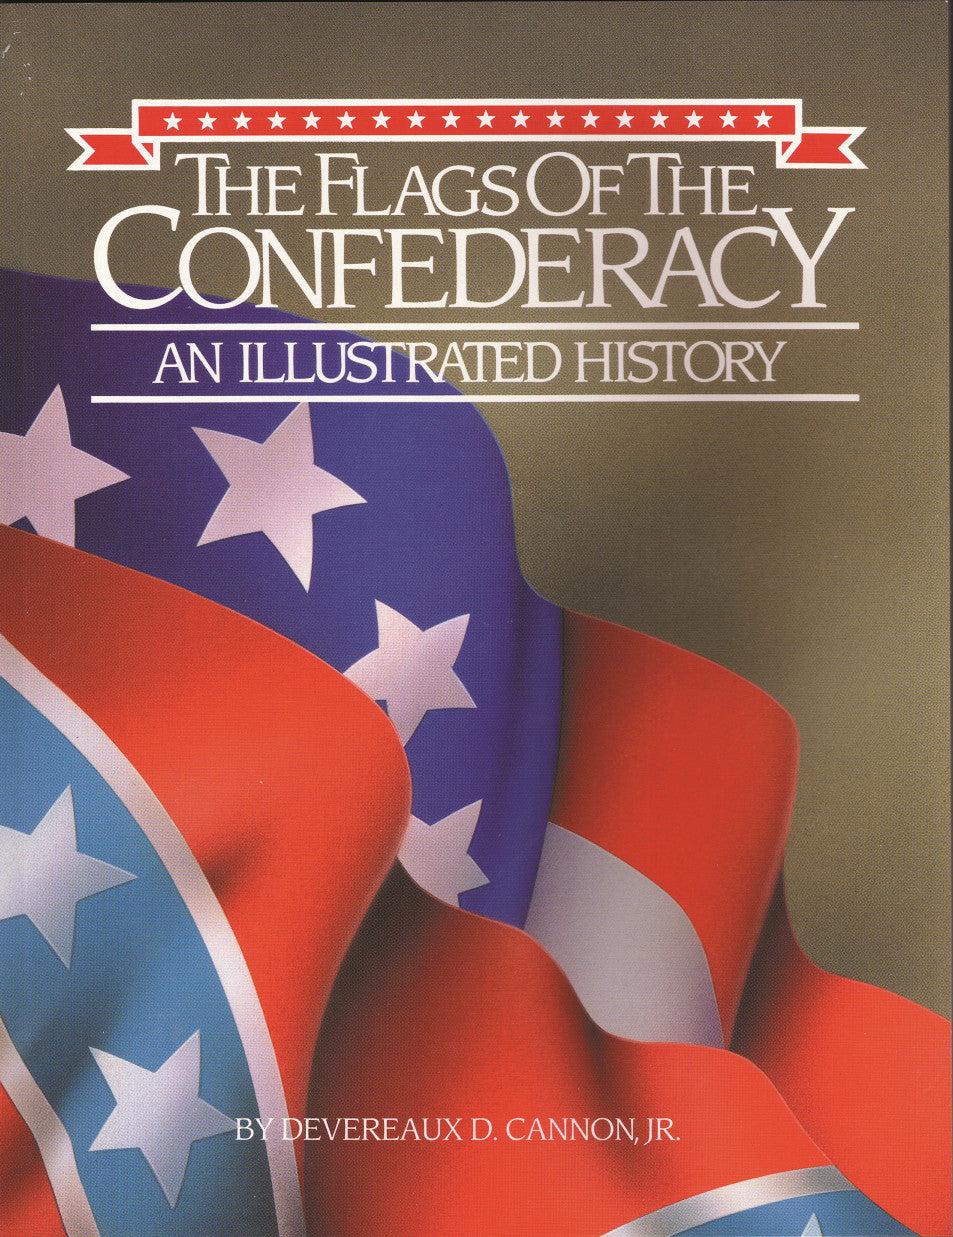 Books, The Flags of the Confederacy: An Illustrated History